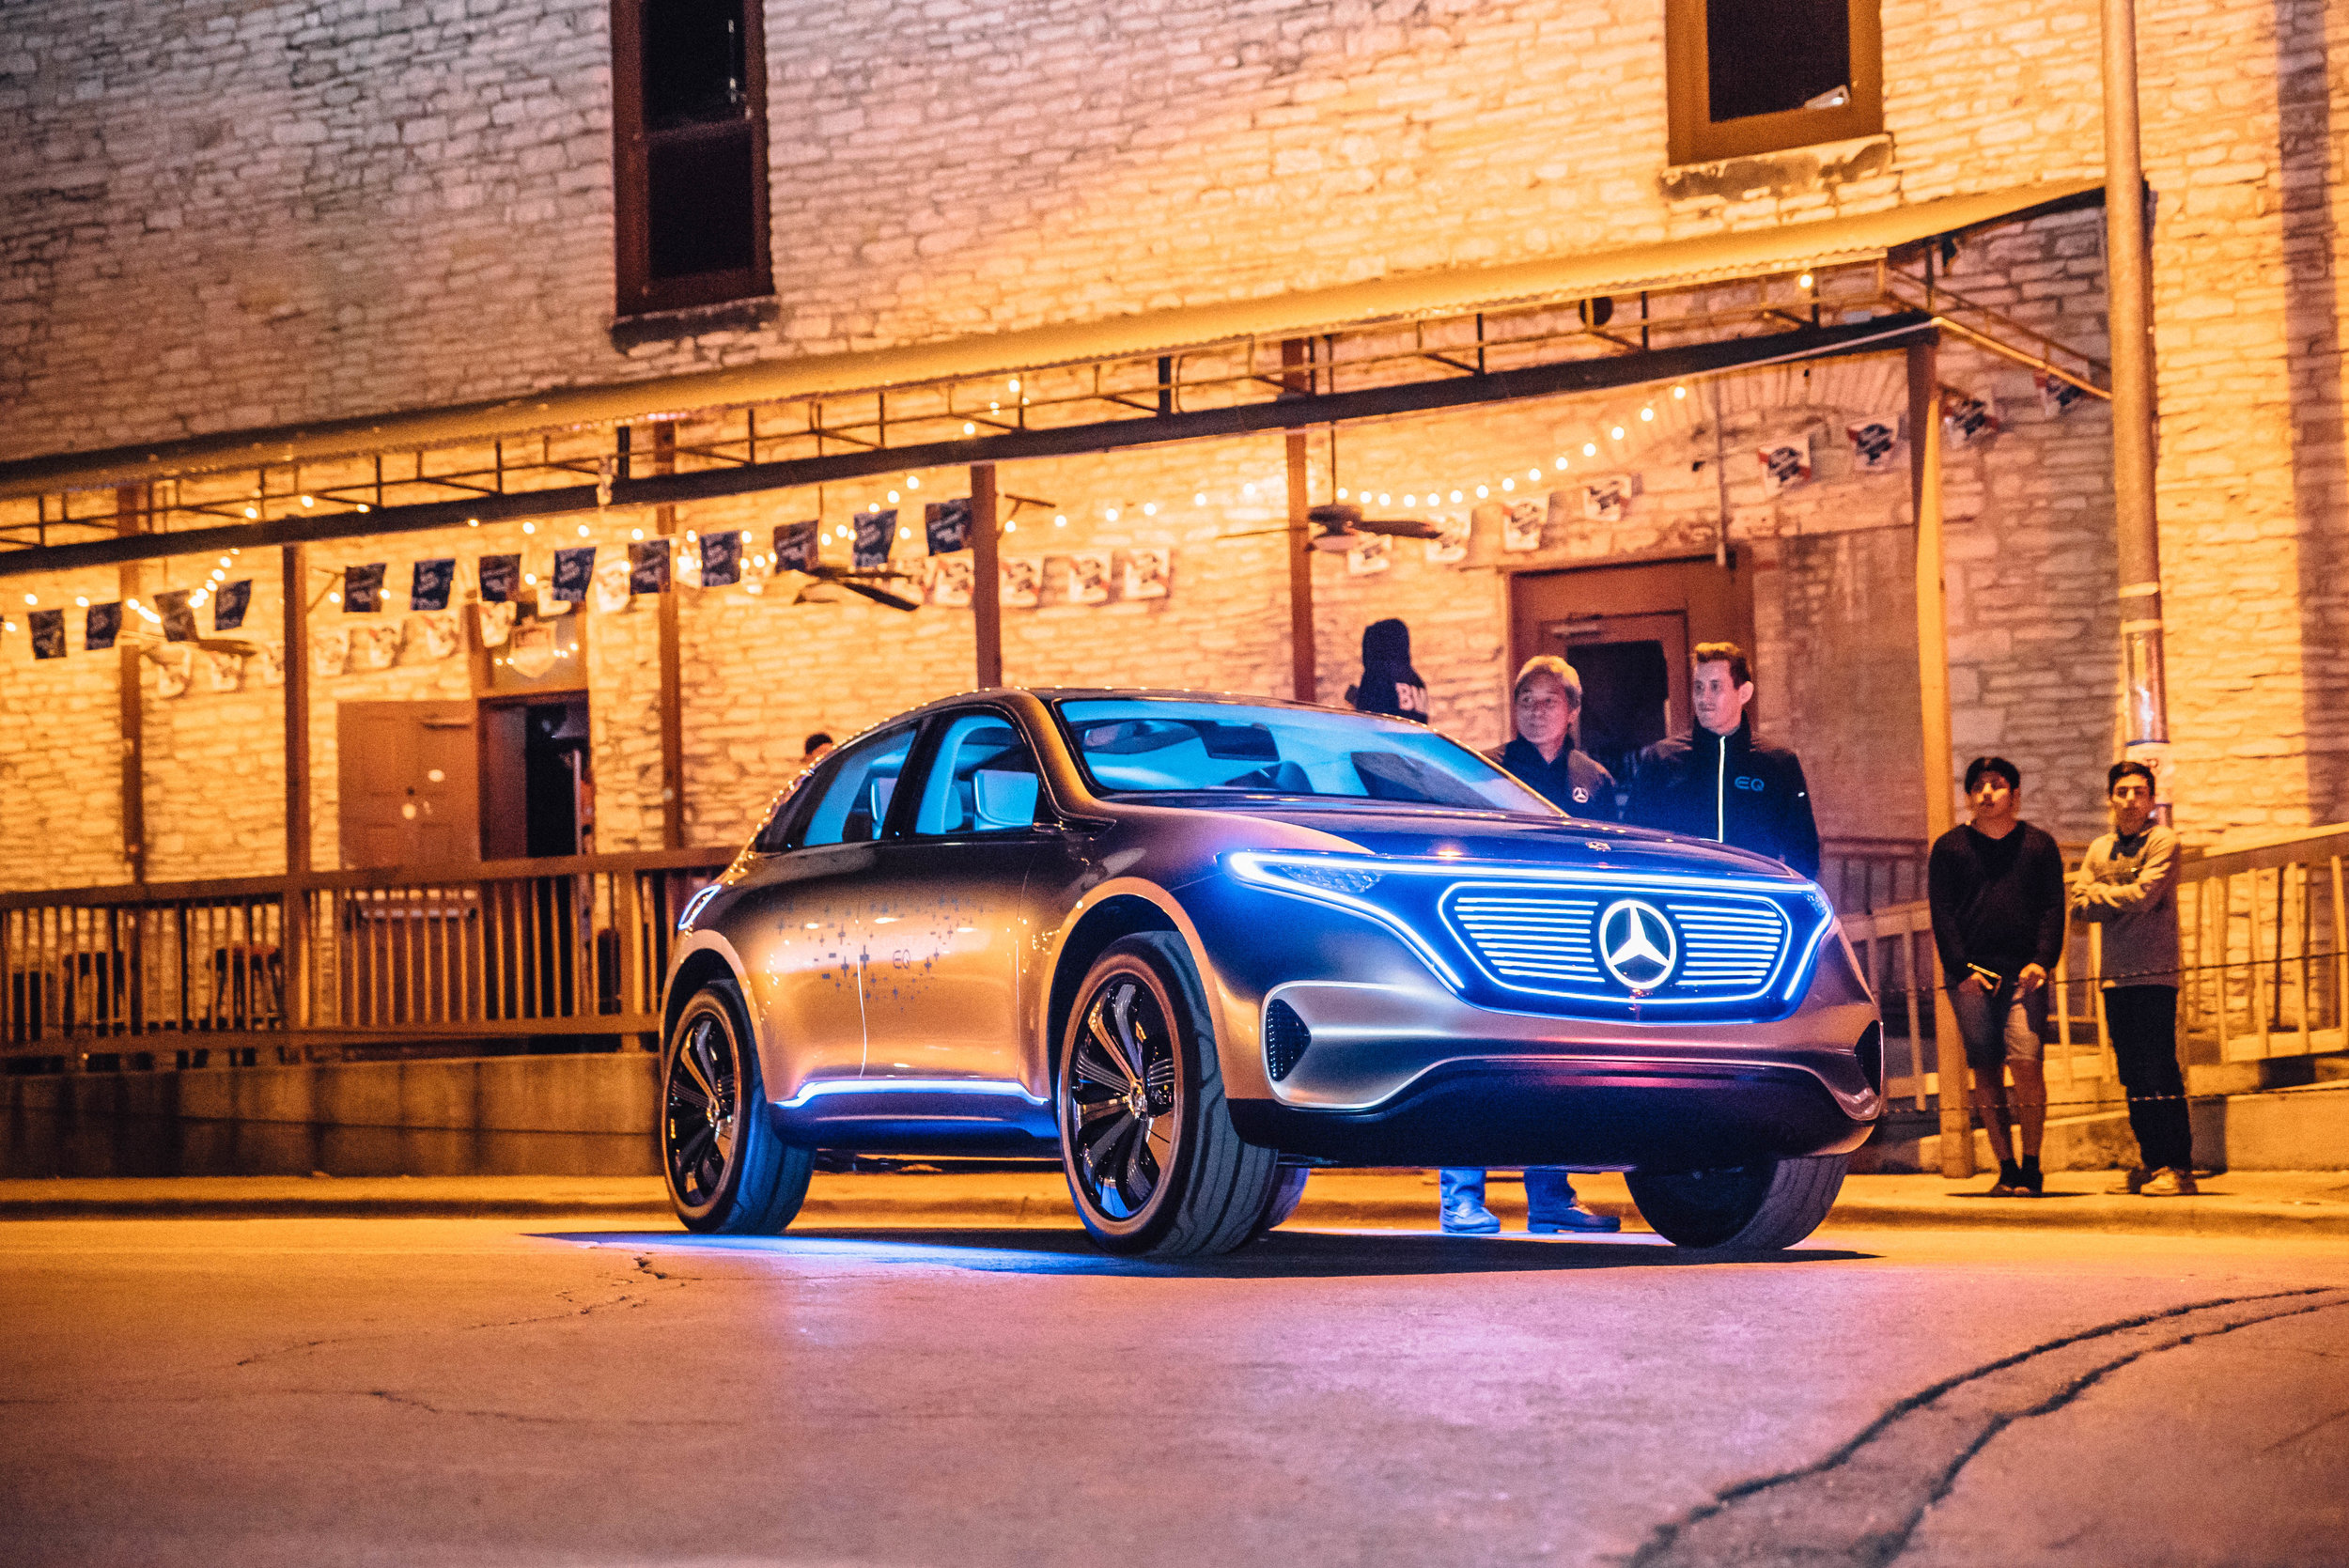 Concept EQ Mercedes at SXSW 2018 | Jordan Hefler